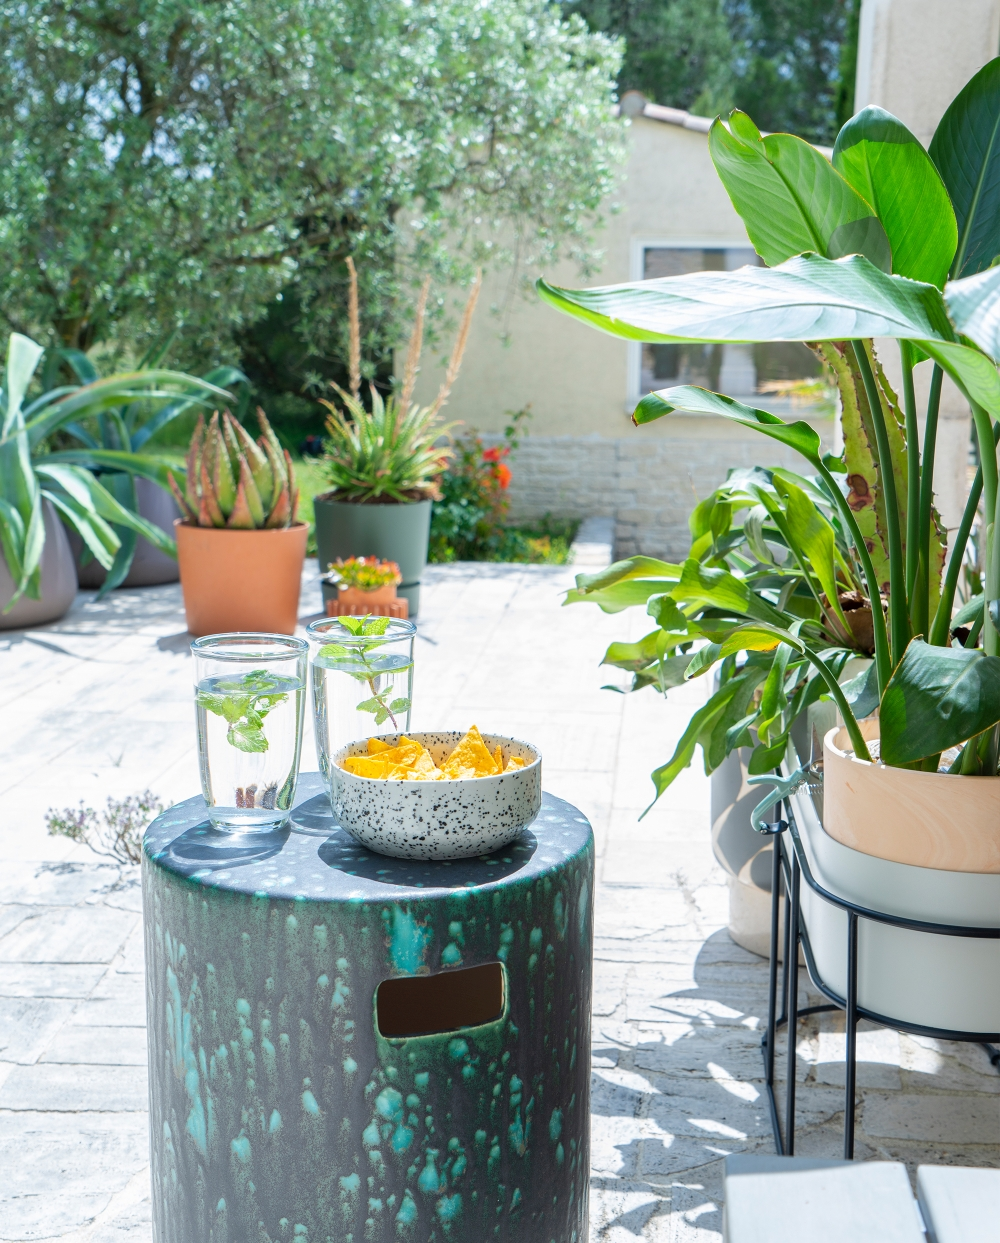 JOELIX.com | Indoor plants go outside, green terrace with MADE.com